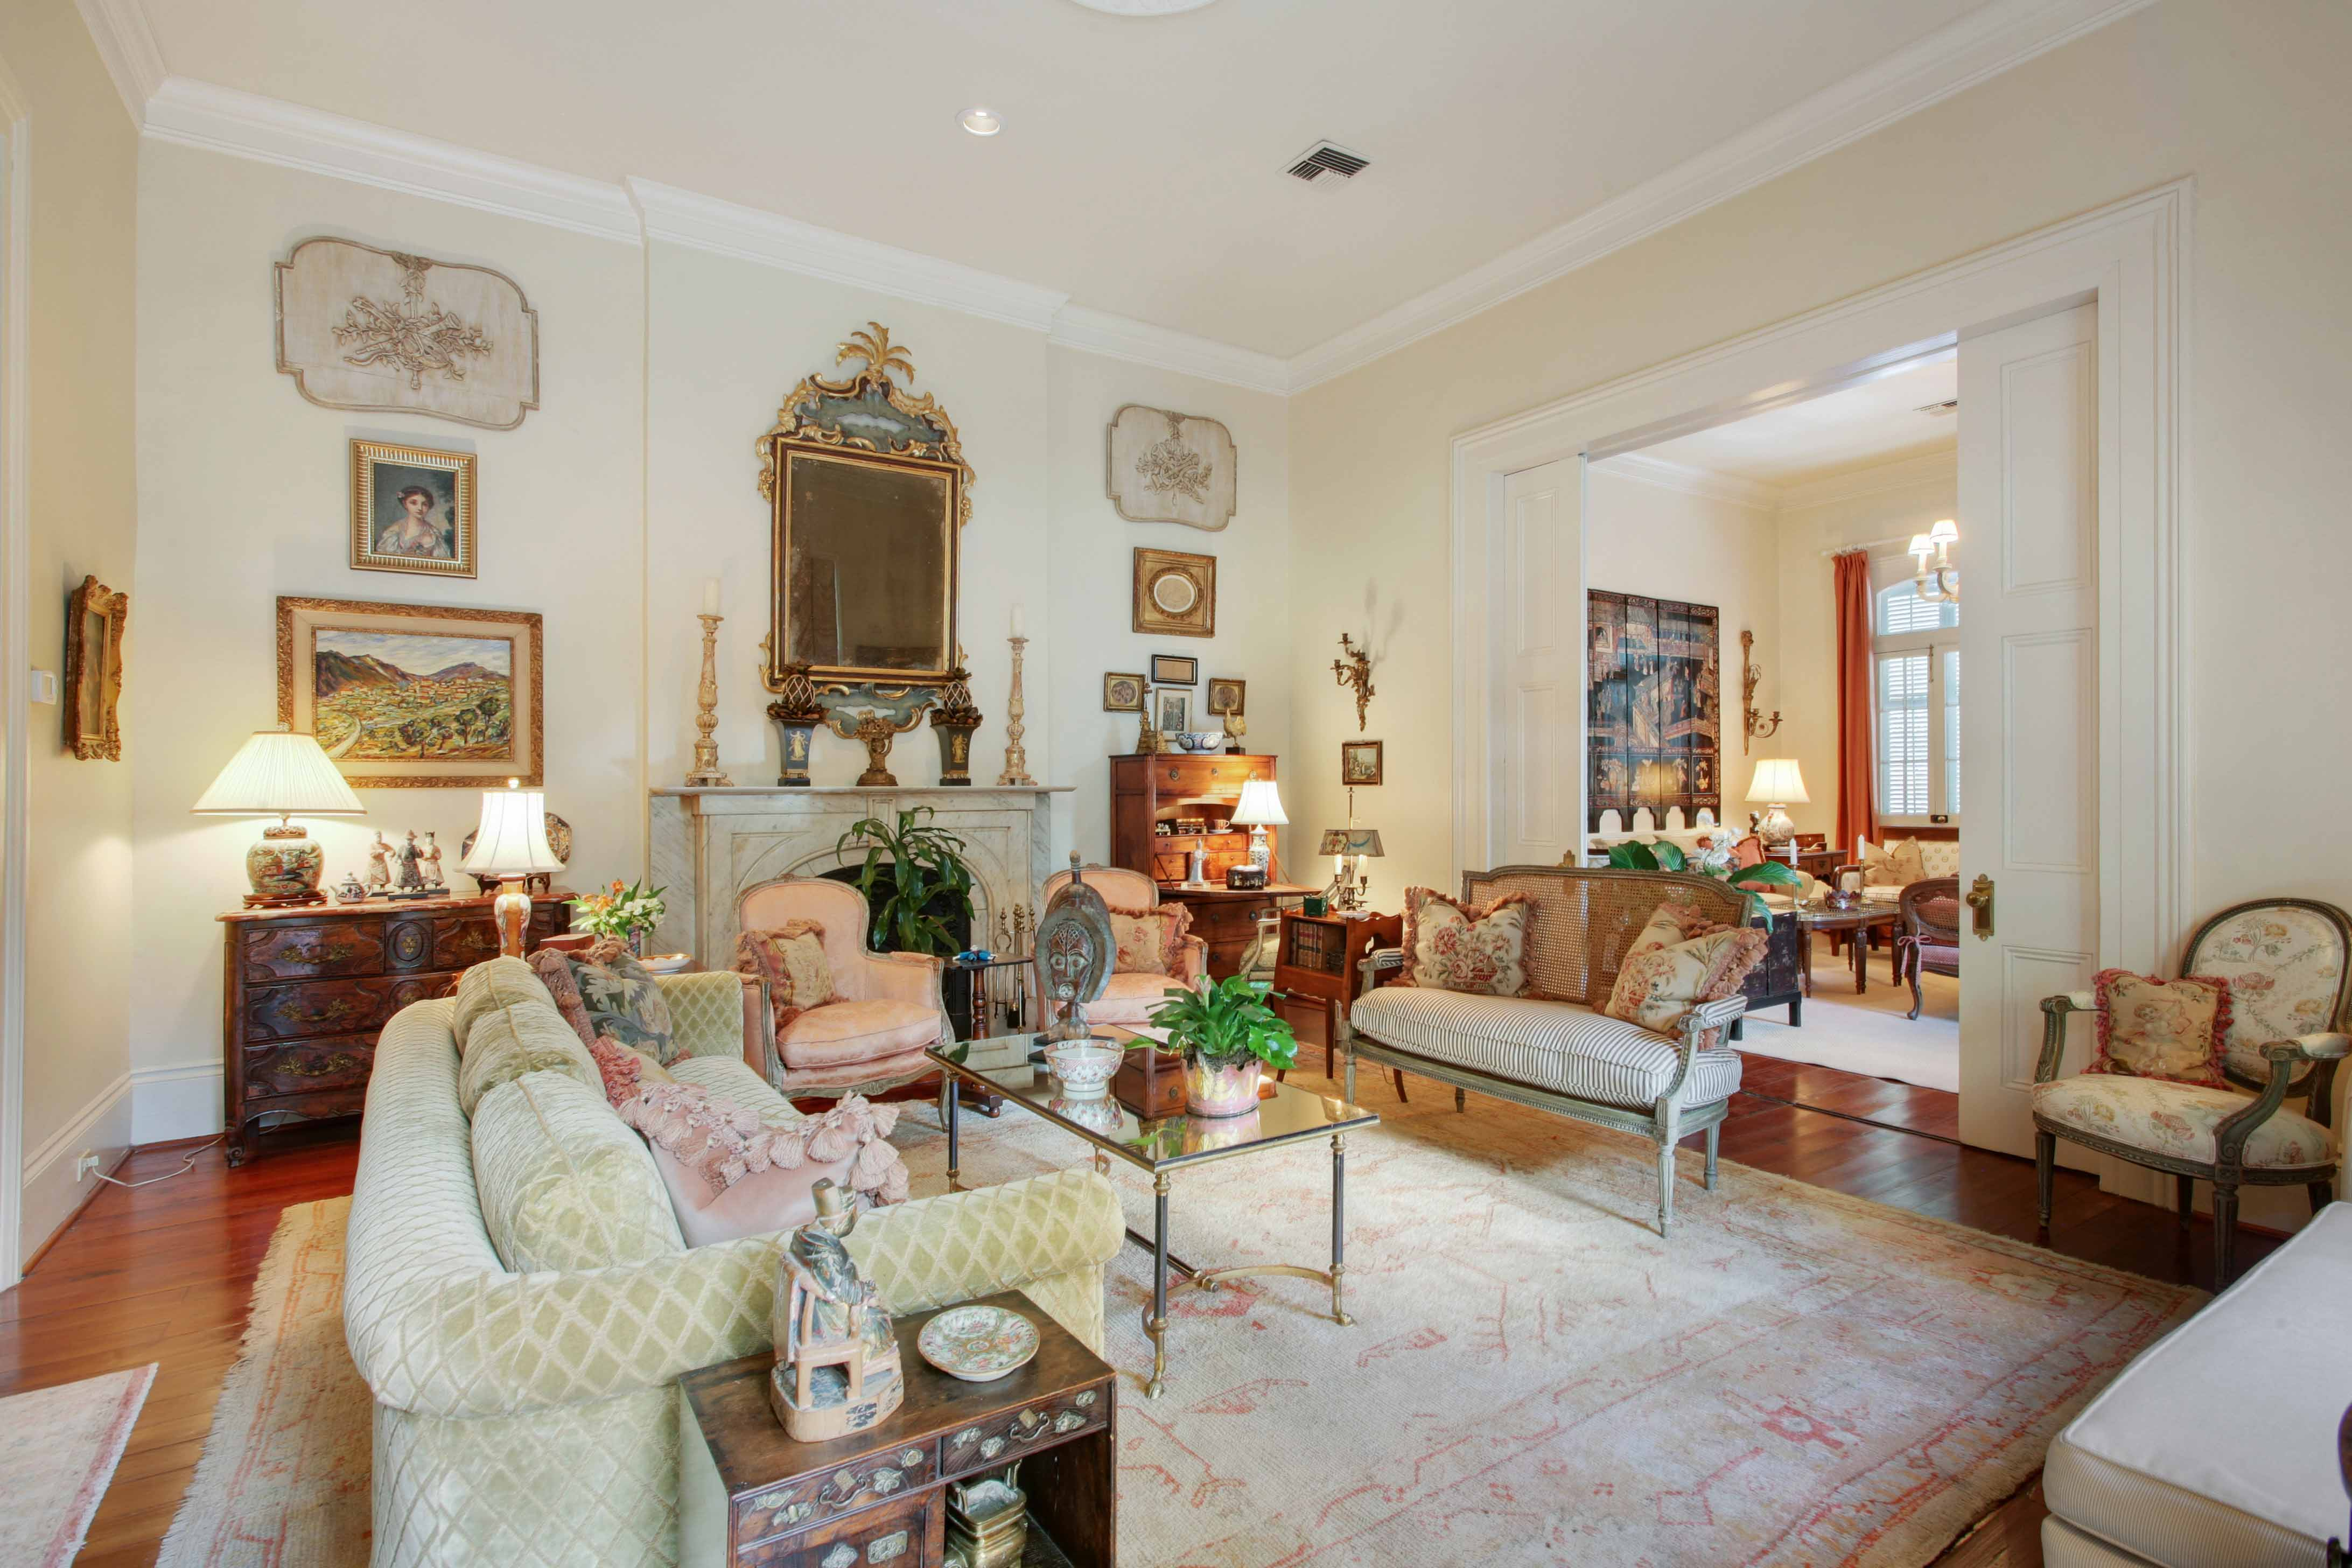 beautiful french quarter home with classic appeal asks 1 75m pocket doors a double parlor and a formal dining room a den and an eat in kitchen also add to the home s refreshing ambiance